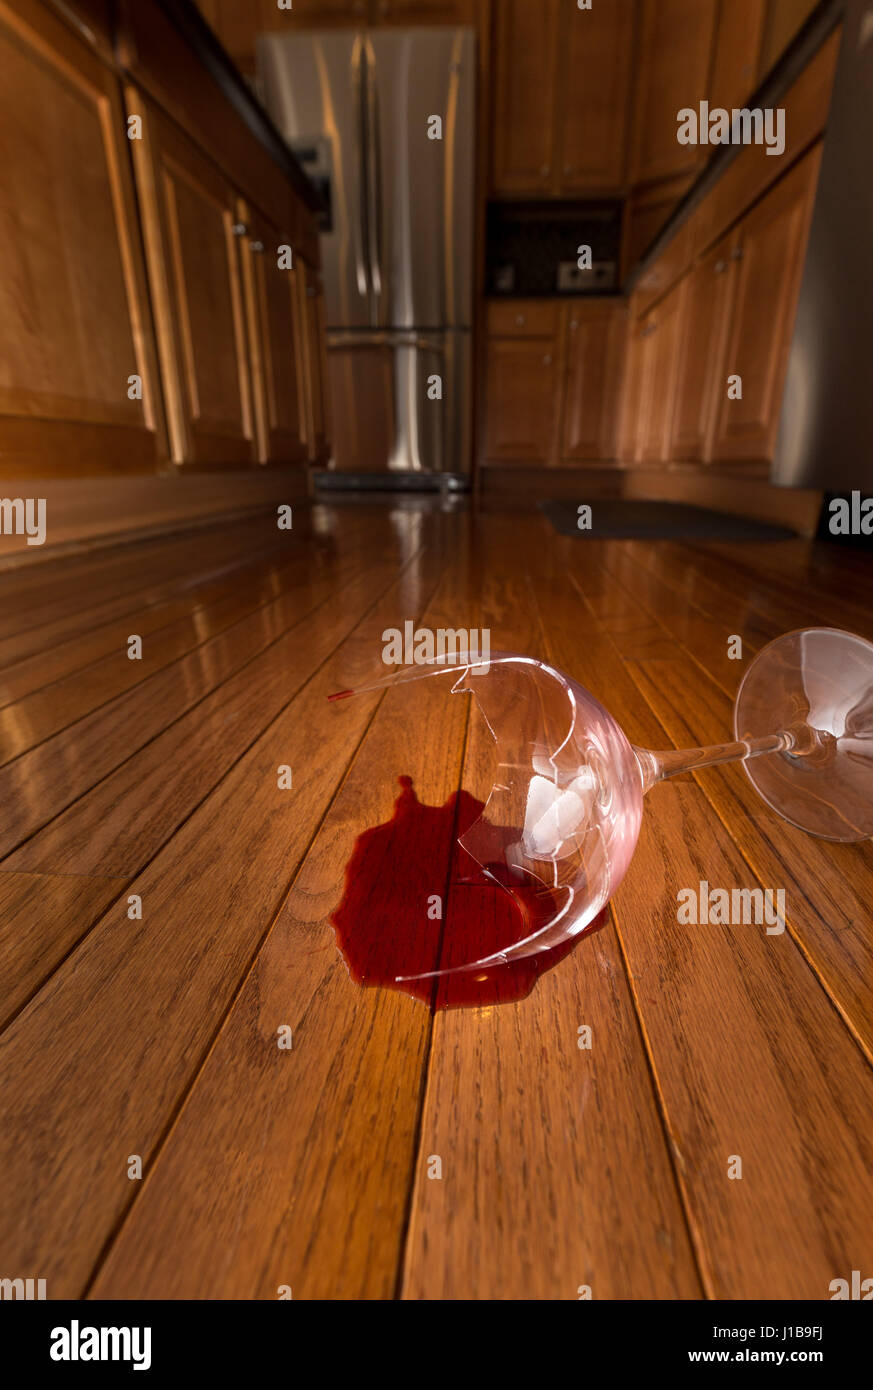 Broken wine glass on floor of modern kitchen - domestic violence concept - Stock Image